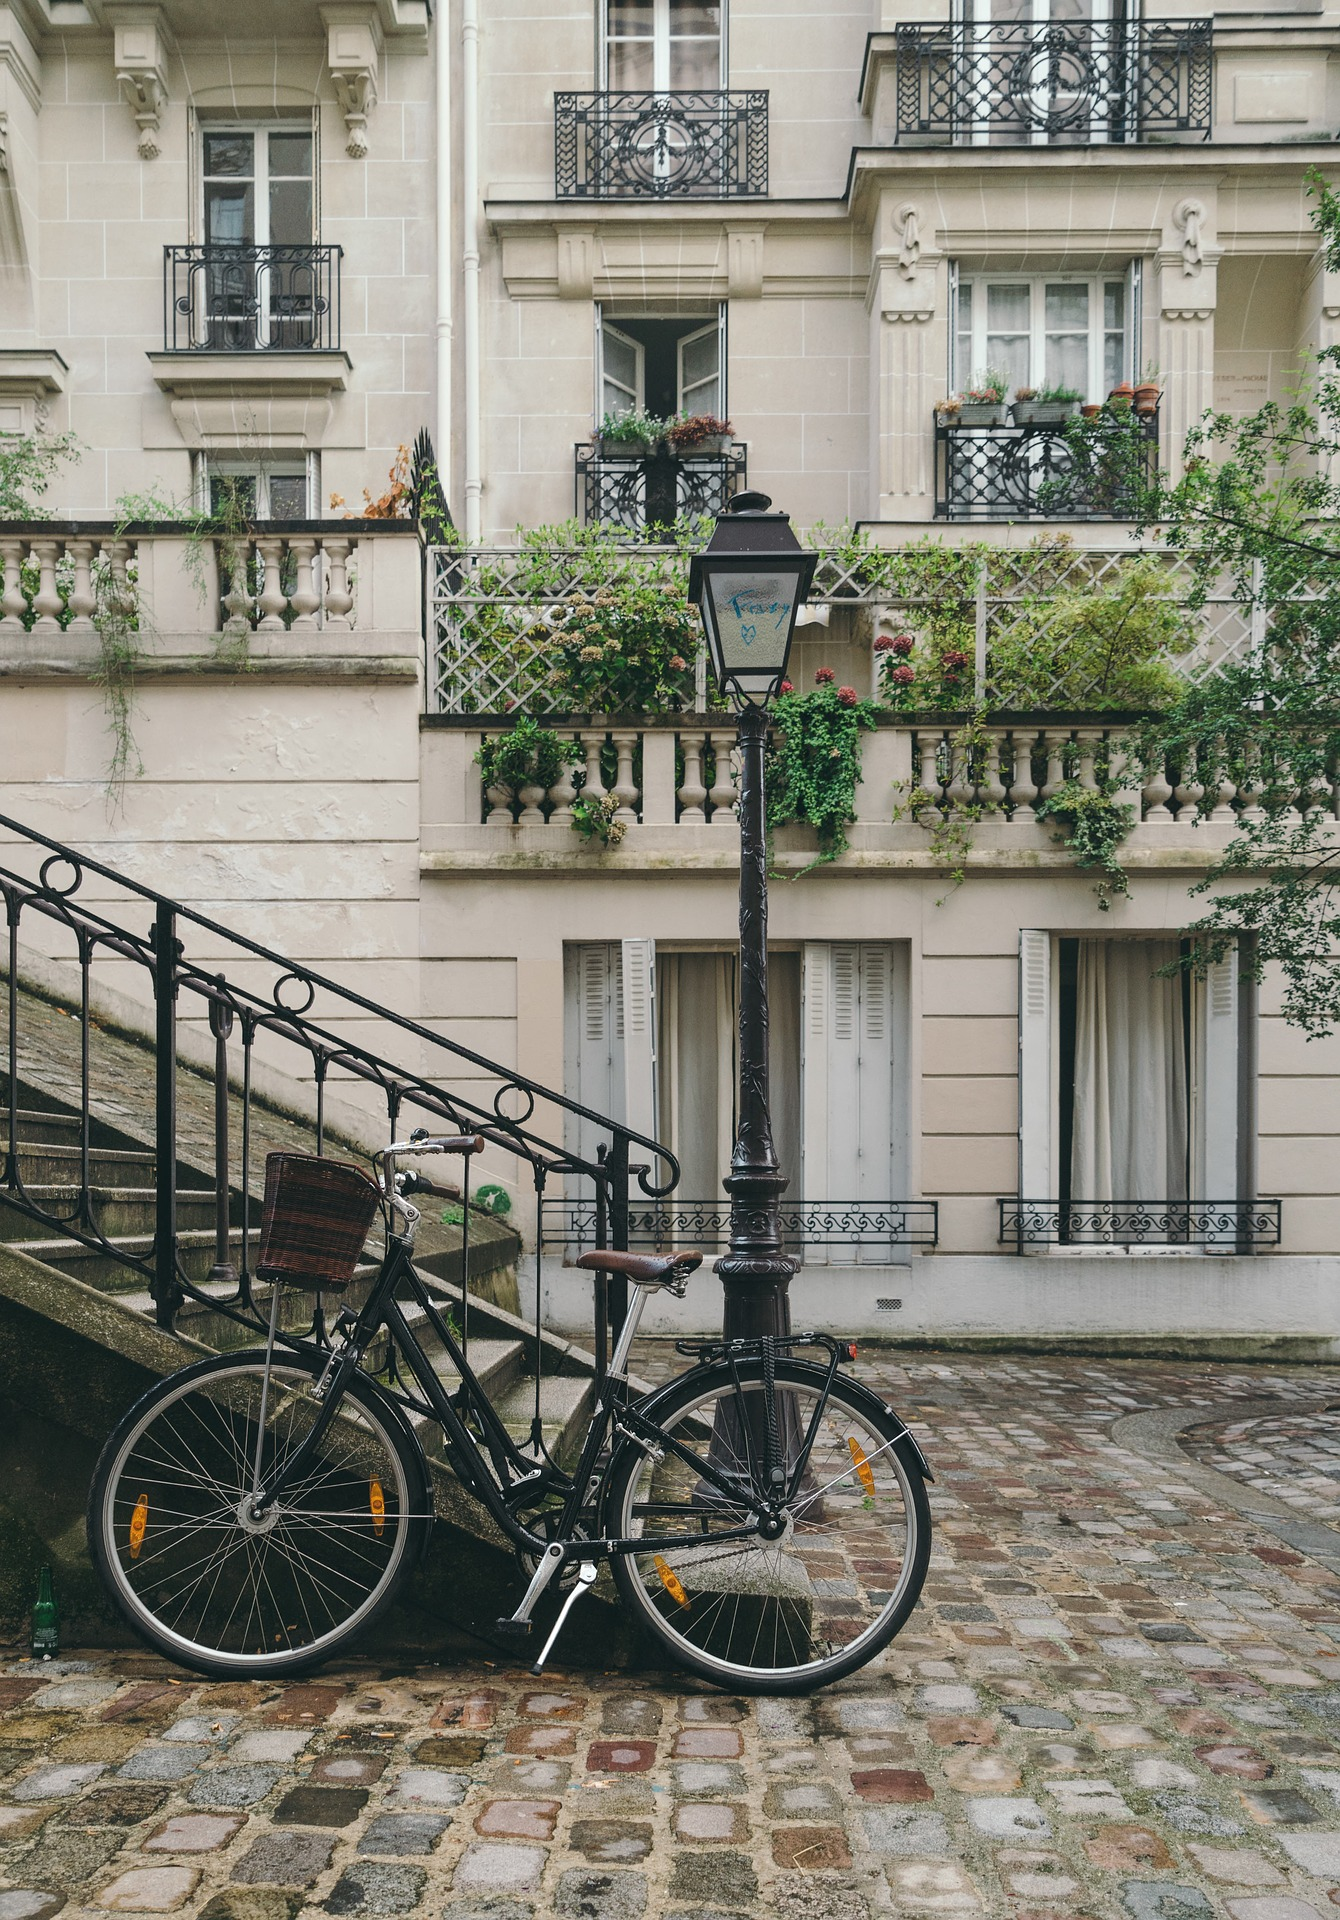 bicycle-1851497_1920